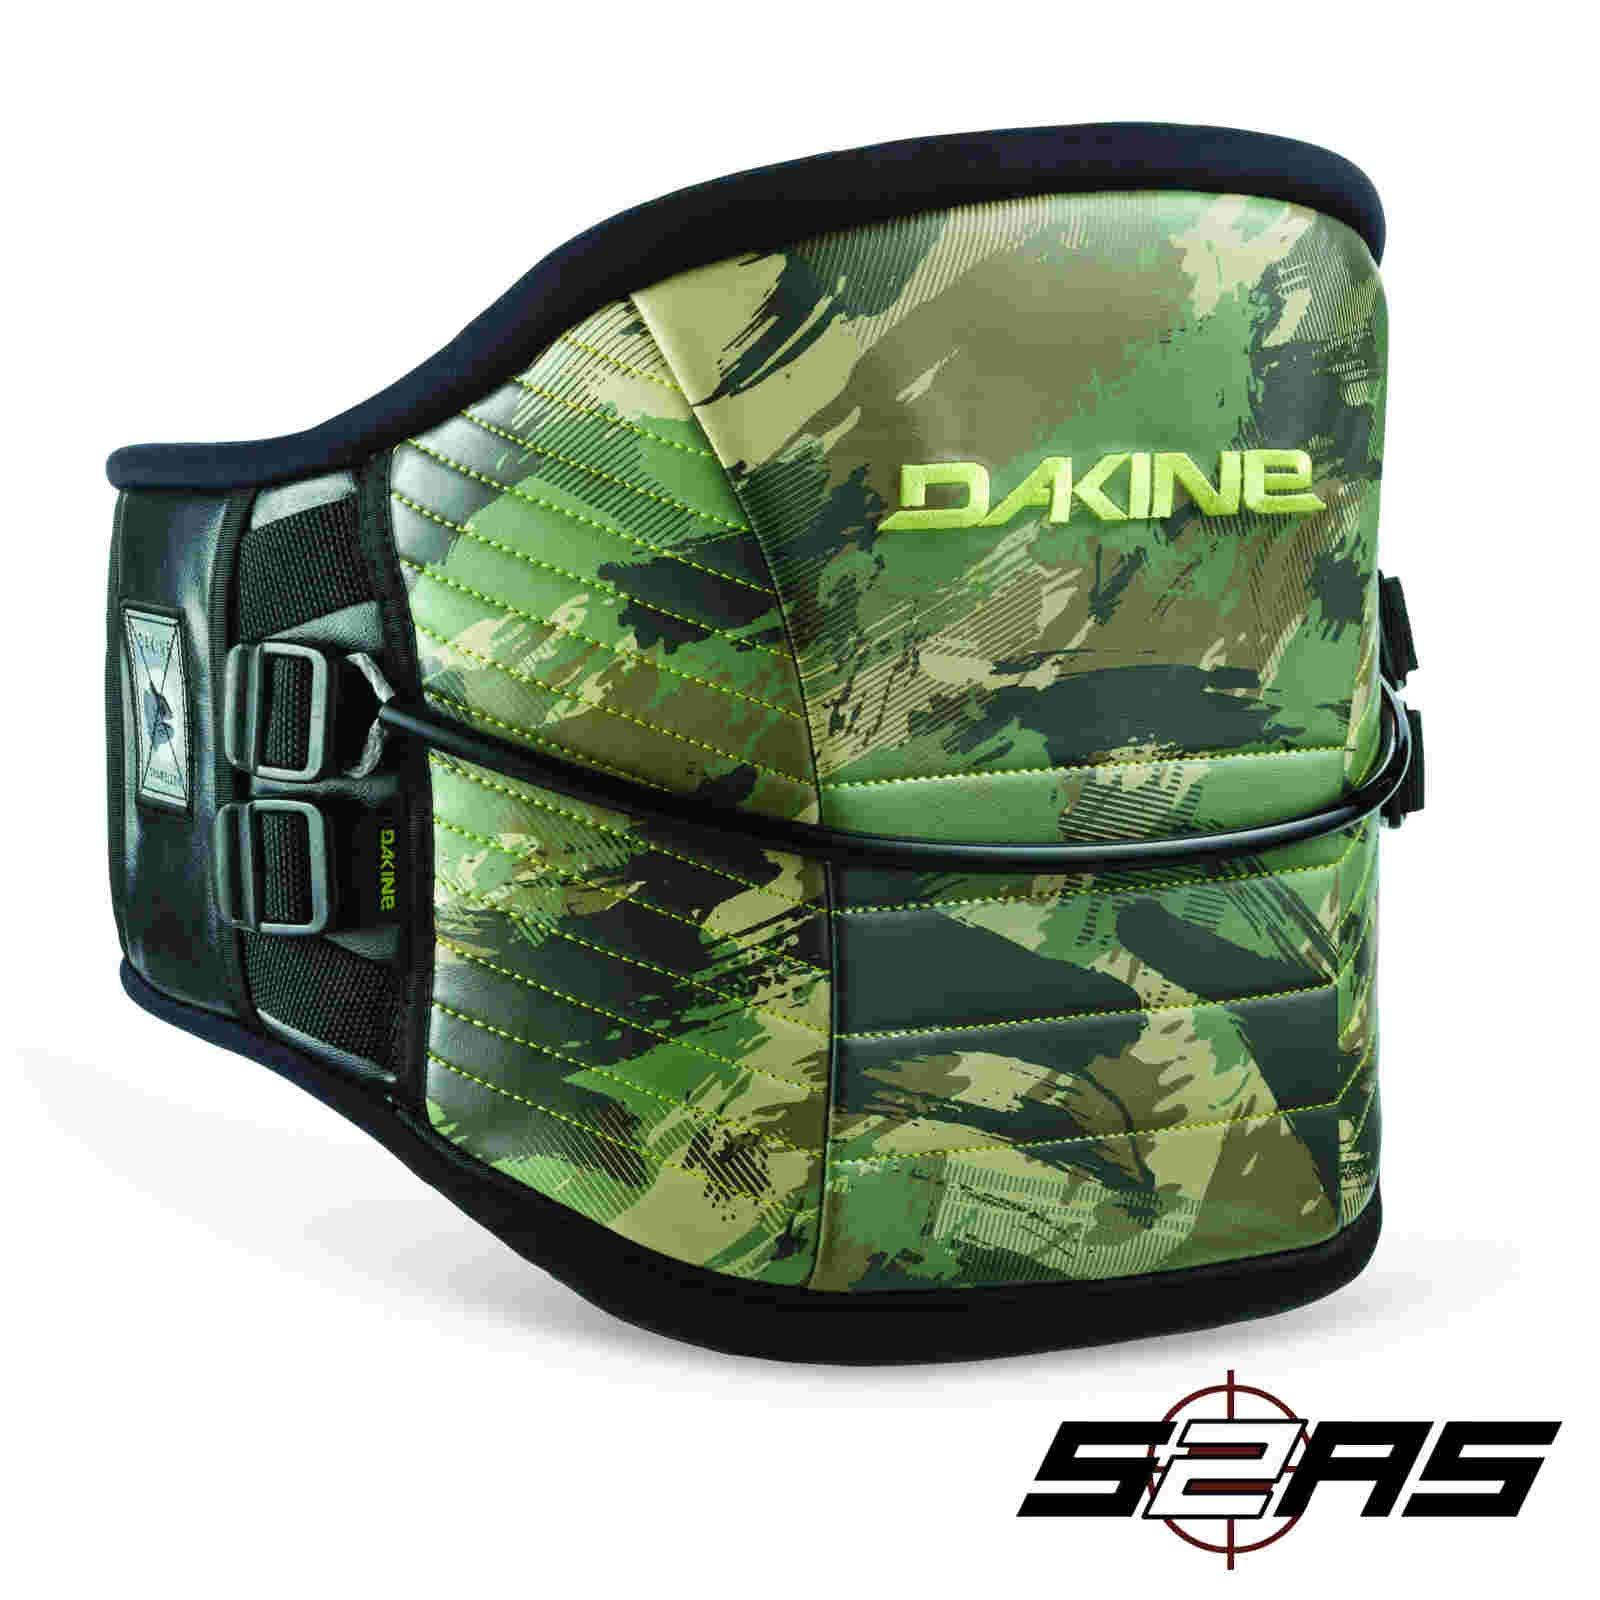 Dakine Men's Chameleon Harness, Camo, S